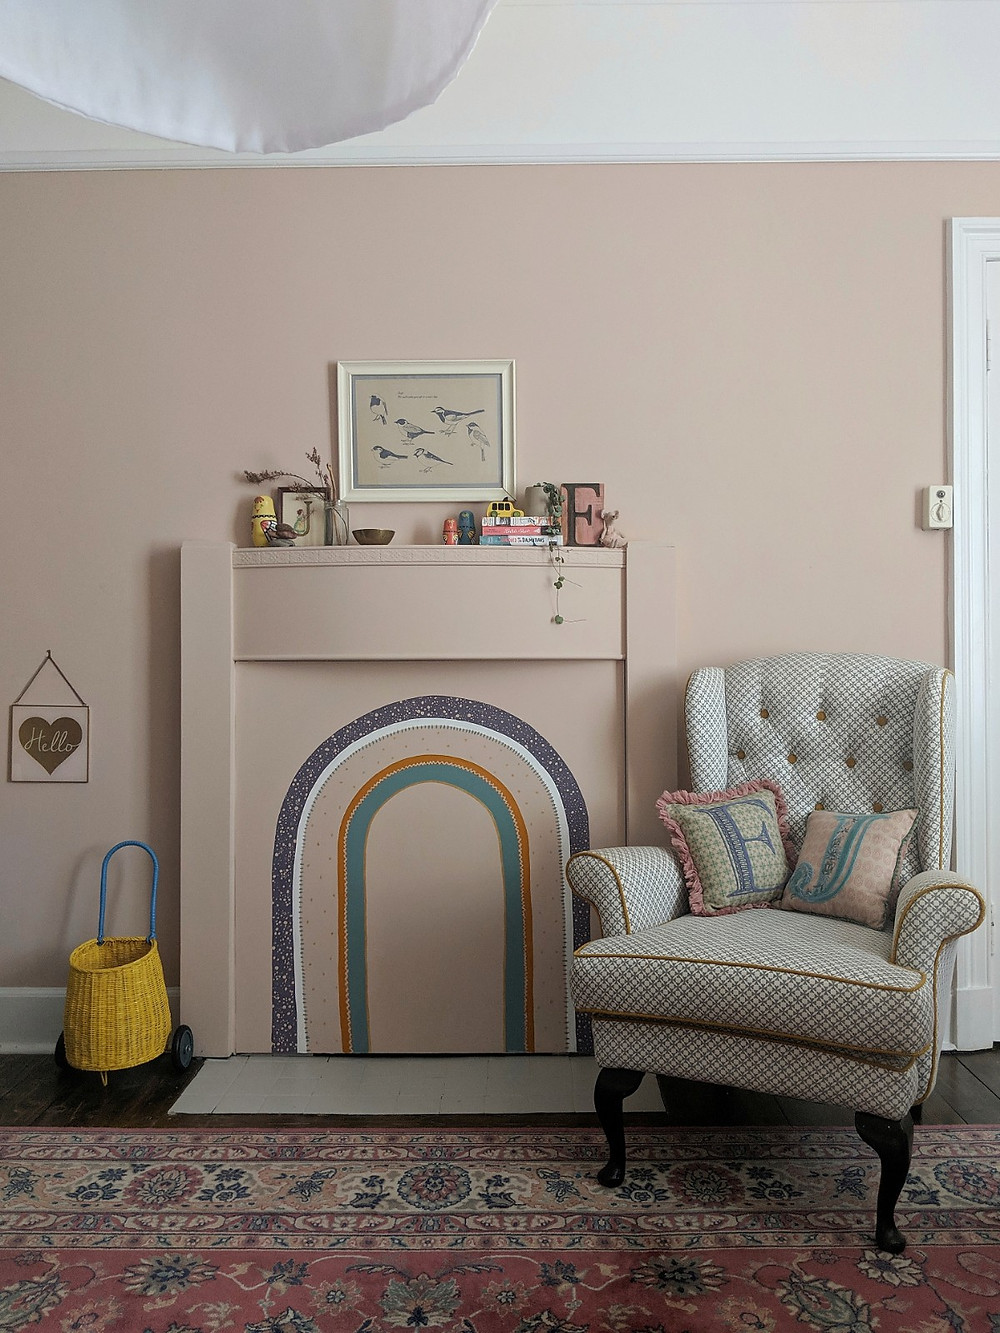 Girls bedroom fireplace painted pink with a rainbow